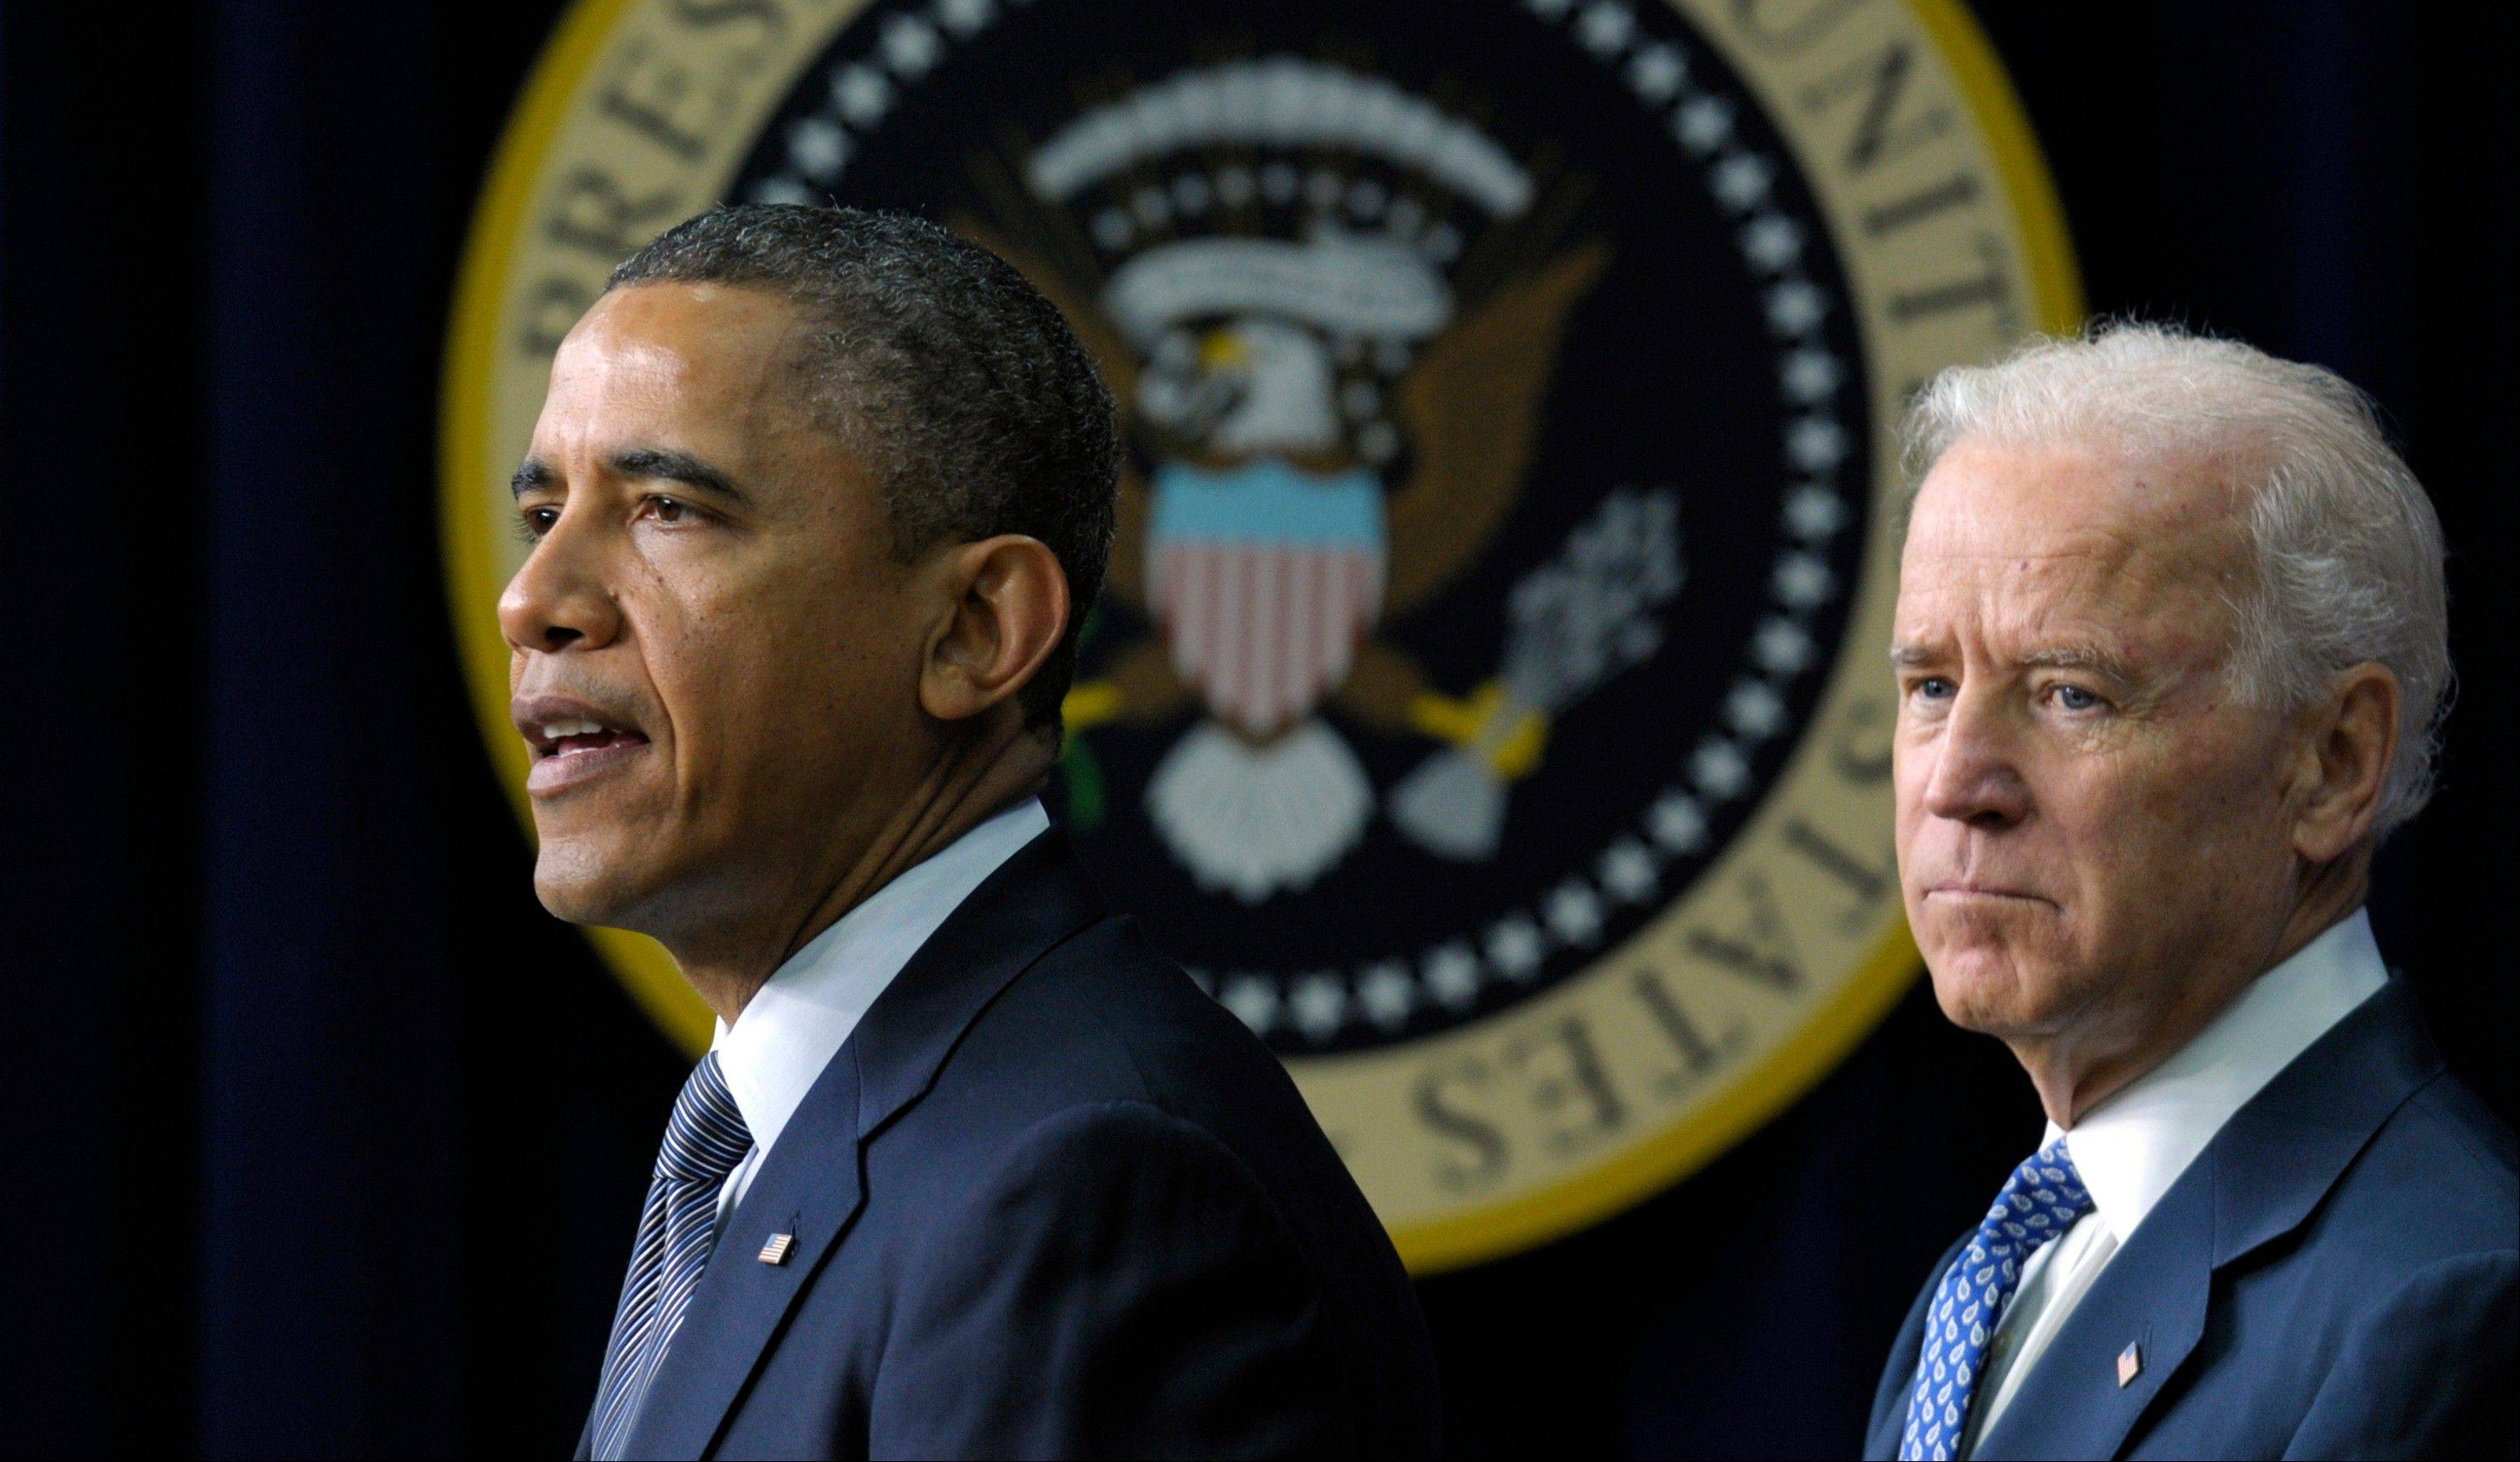 In this Jan. 16 file photo, President Barack Obama, accompanied by Vice President Joe Biden, discusses proposals to reduce gun violence, at the White House. Obama is bringing 11 relatives of those killed in the shooting at Connecticut�s Sandy Hook Elementary School to Washington on Air Force One Monday so they can personally encourage senators to back gun legislation that faces tough opposition.